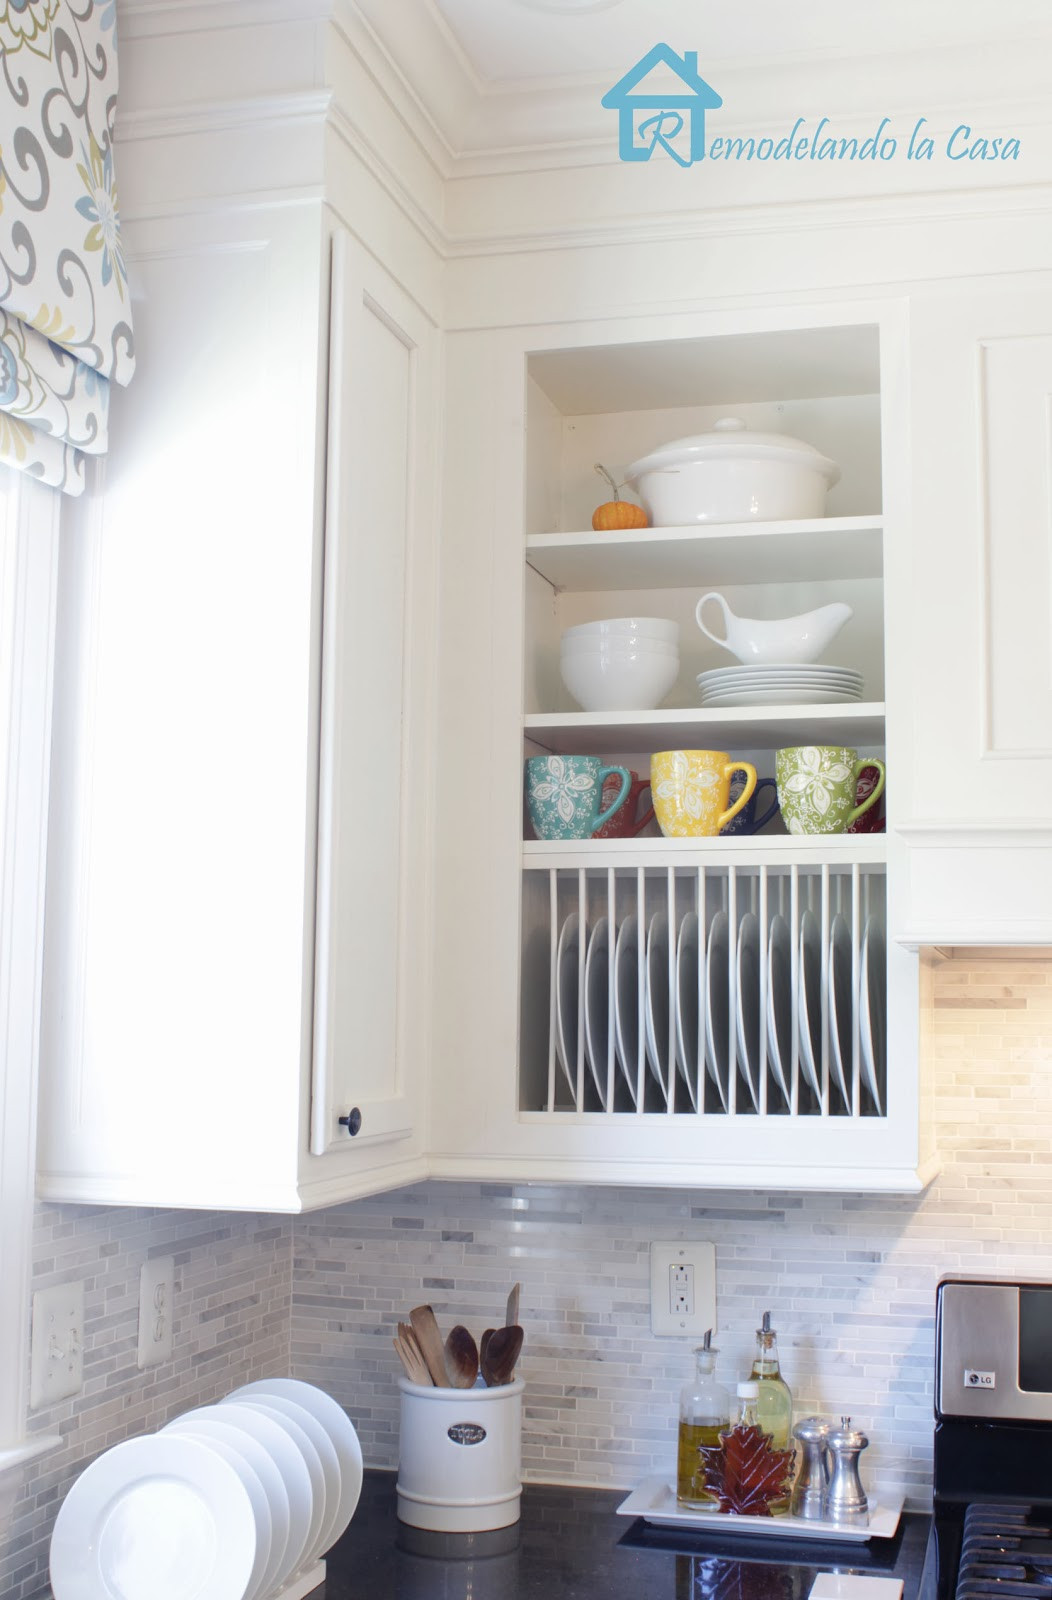 Best ideas about DIY Plate Racks . Save or Pin DIY Inside Cabinet Plate Rack Remodelando la Casa Now.